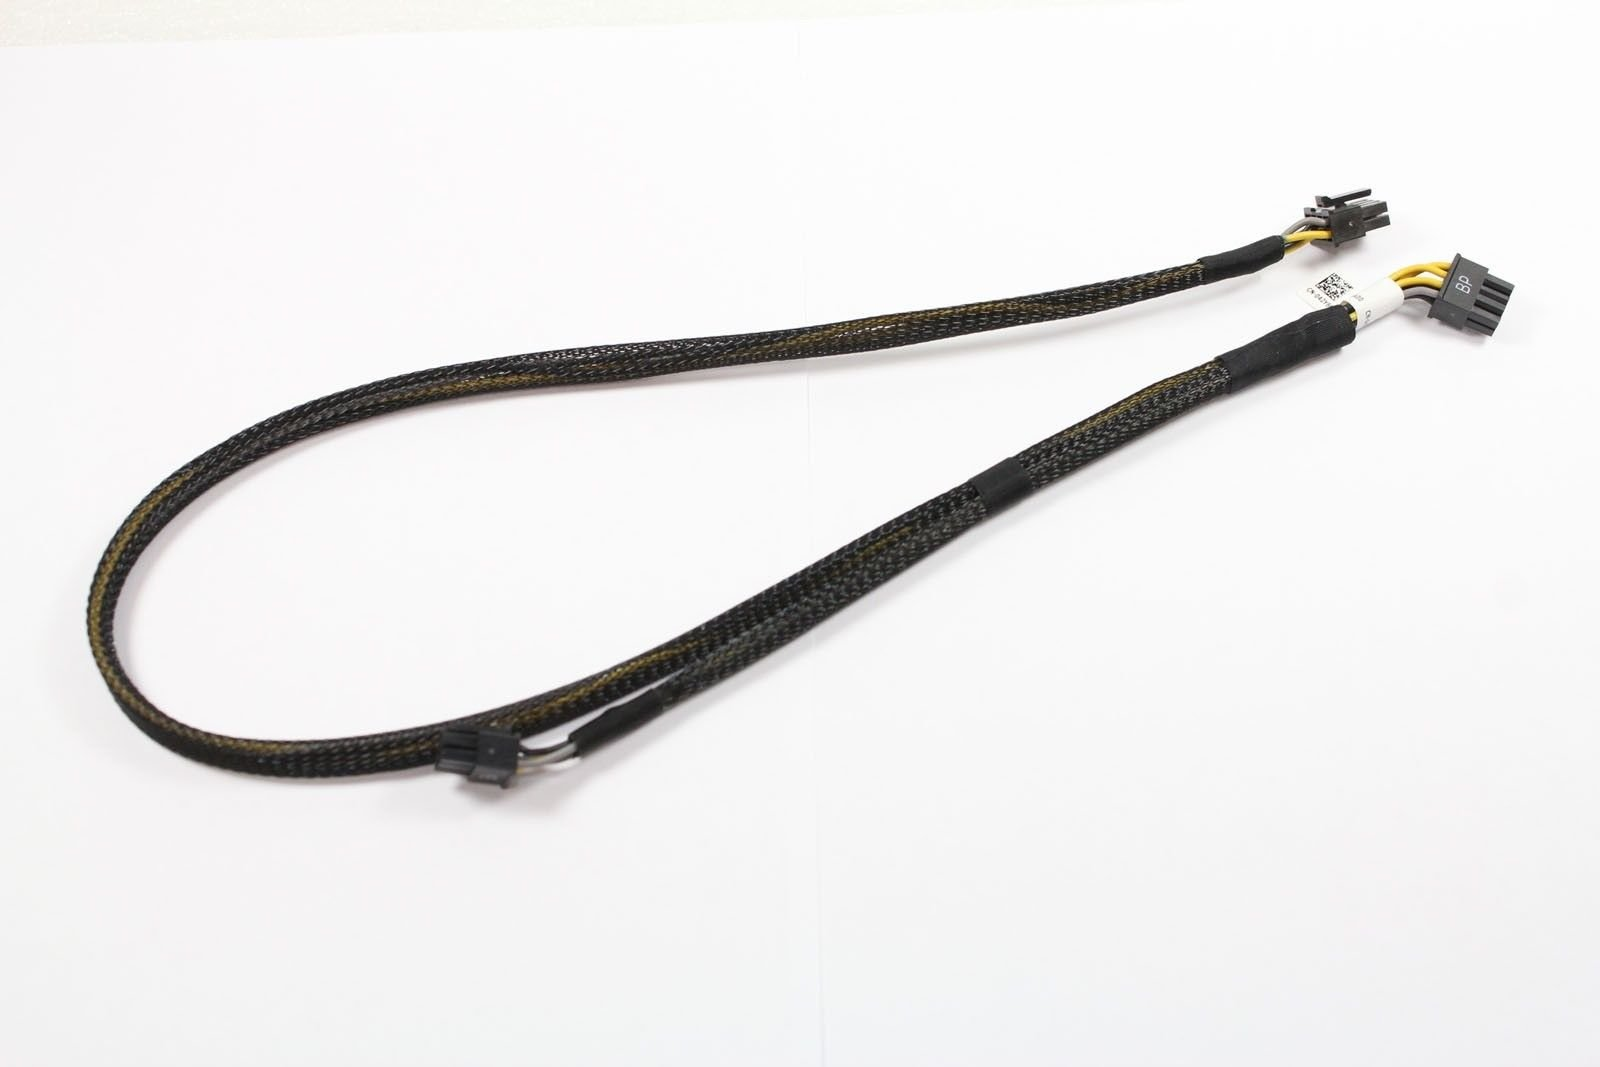 Dell PowerEdge R620 Power Cable 42Y6C 042Y6C by Dell (Image #1)